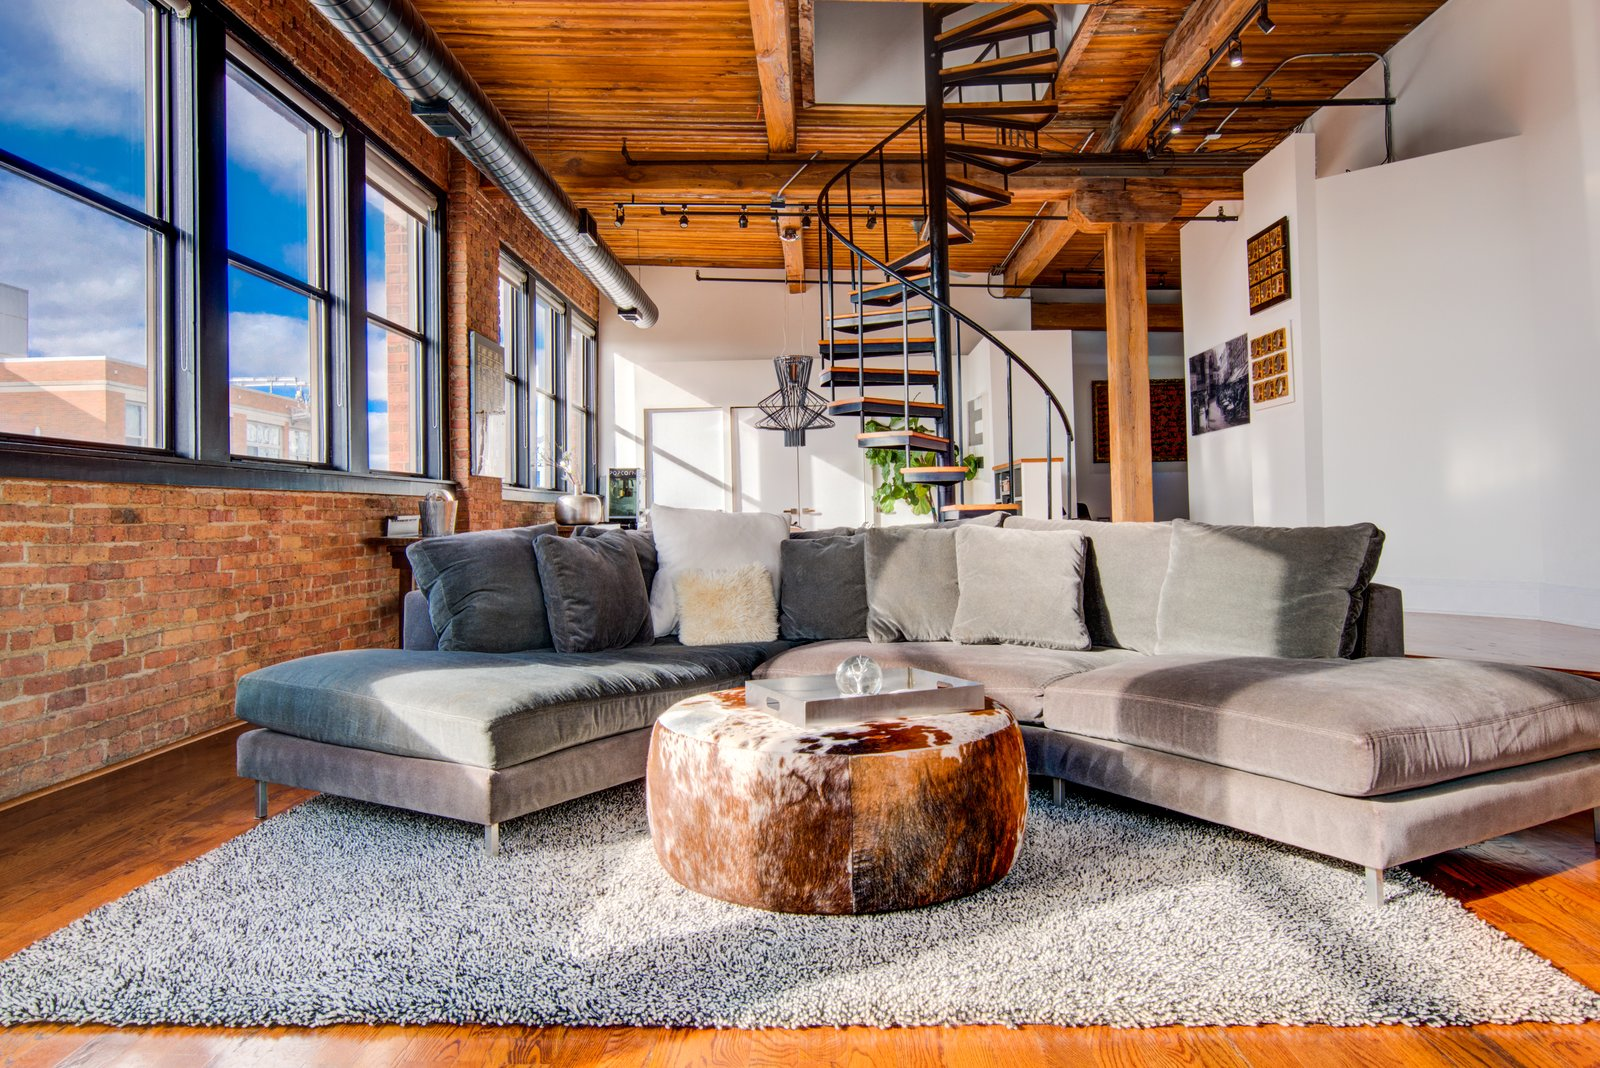 Living Room, Ottomans, Medium Hardwood Floor, Sectional, and Track Lighting  Penthouse That Starred on NBC's 'Chicago Fire' Asks $1.775M